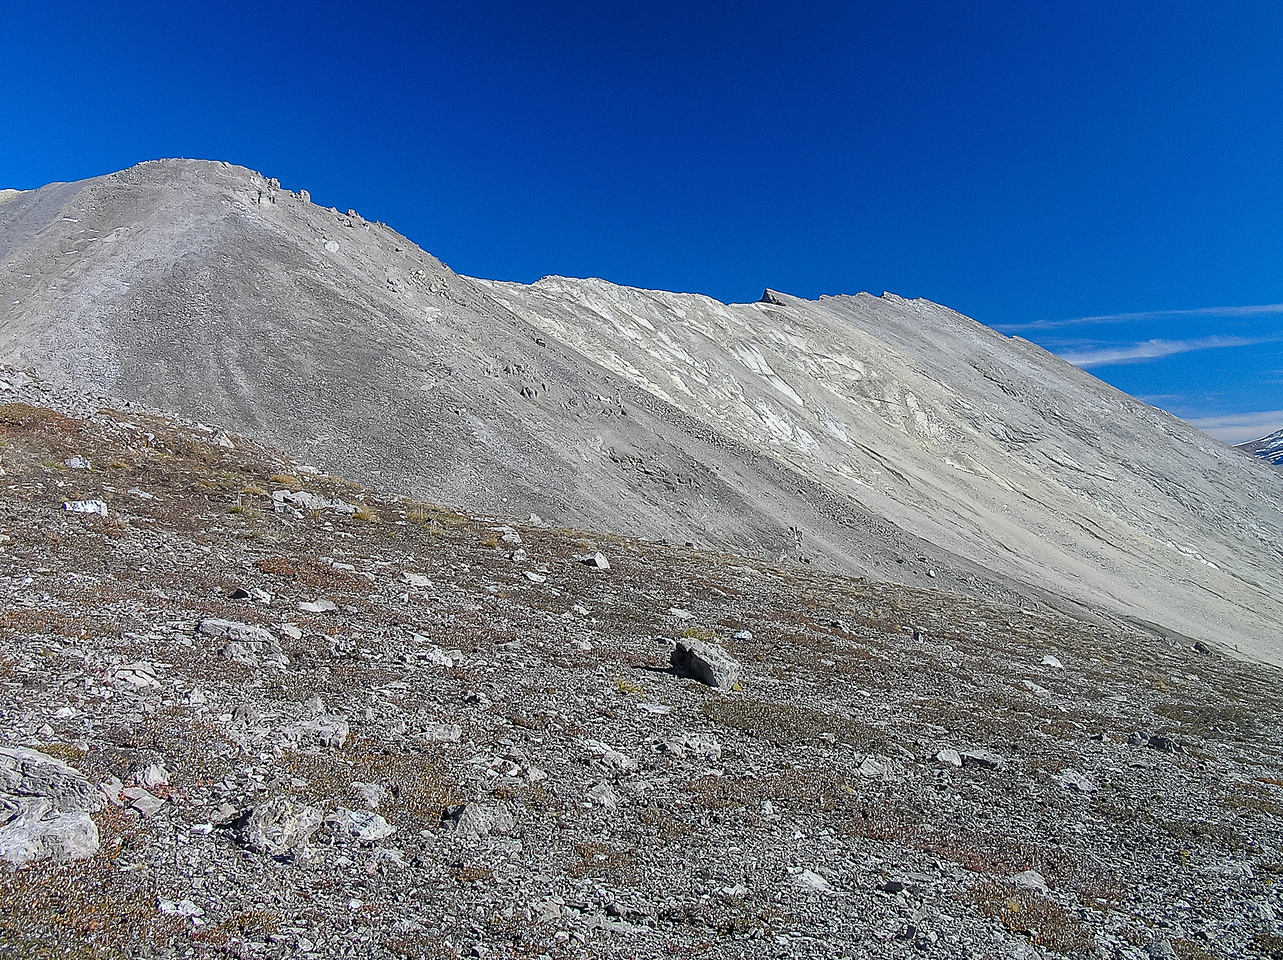 Looking back at Anthozoan's west slope as we start up Brachiopod's south summit